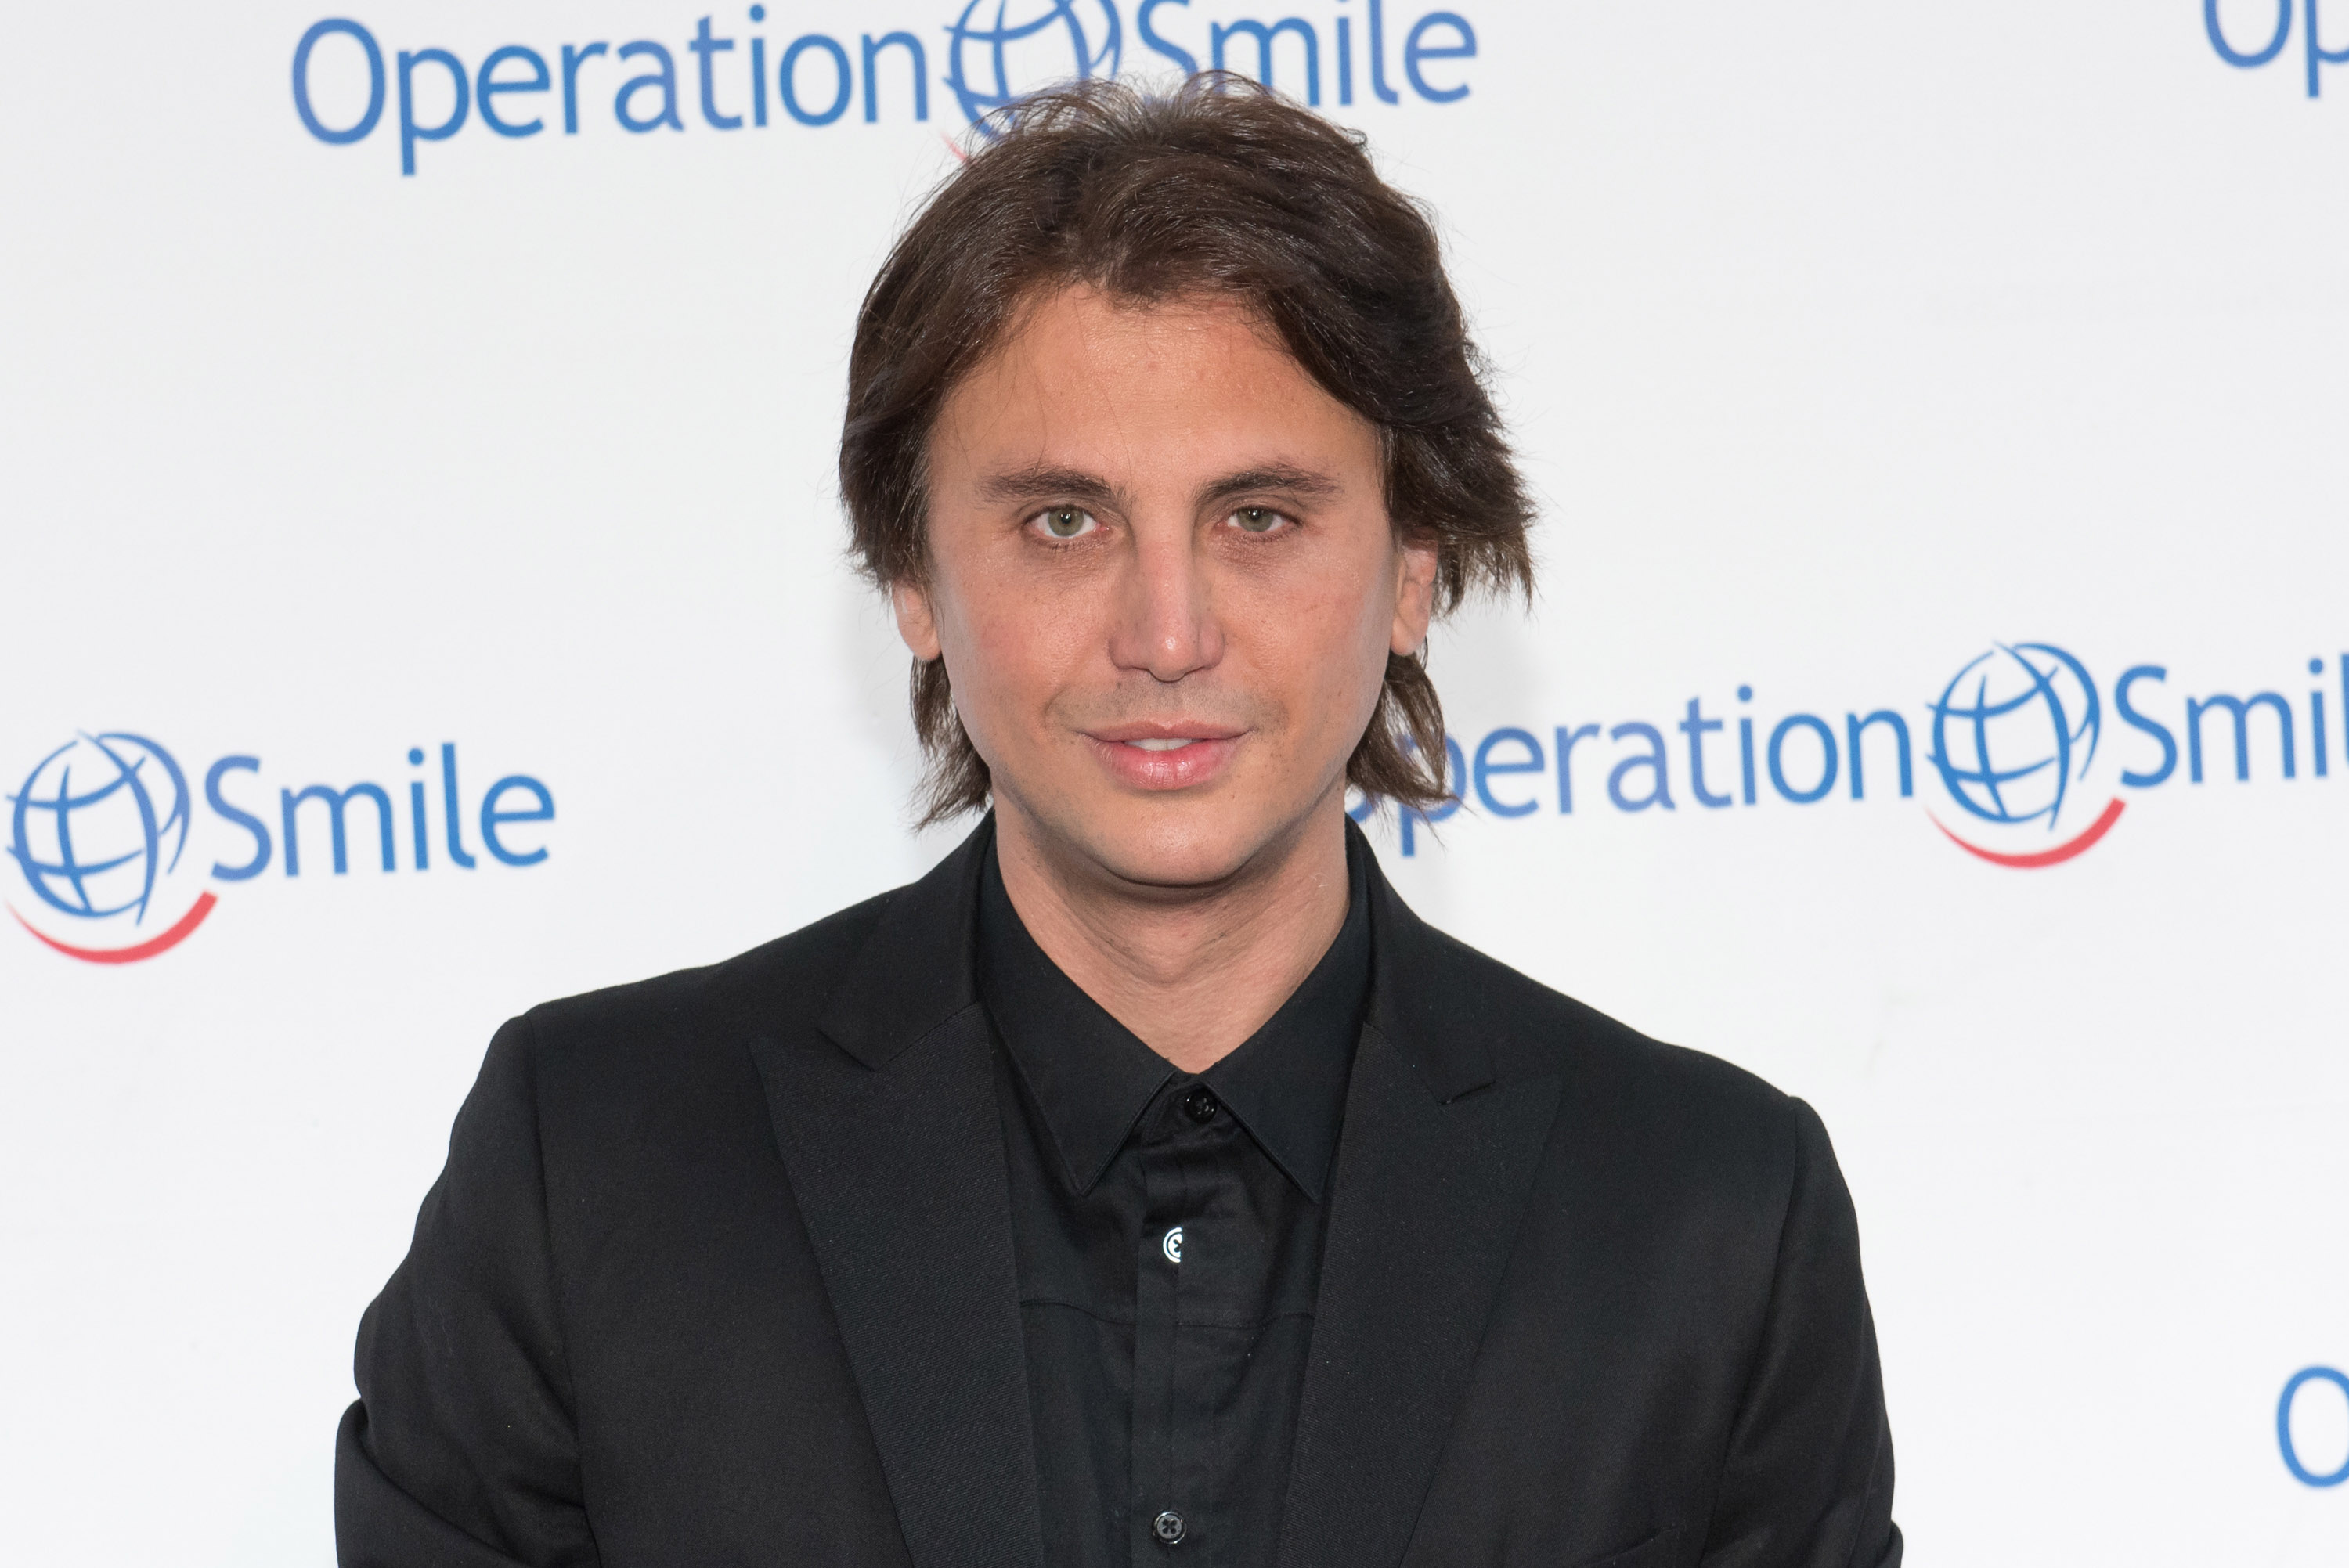 Five things you could learn at Jonathan Cheban's school